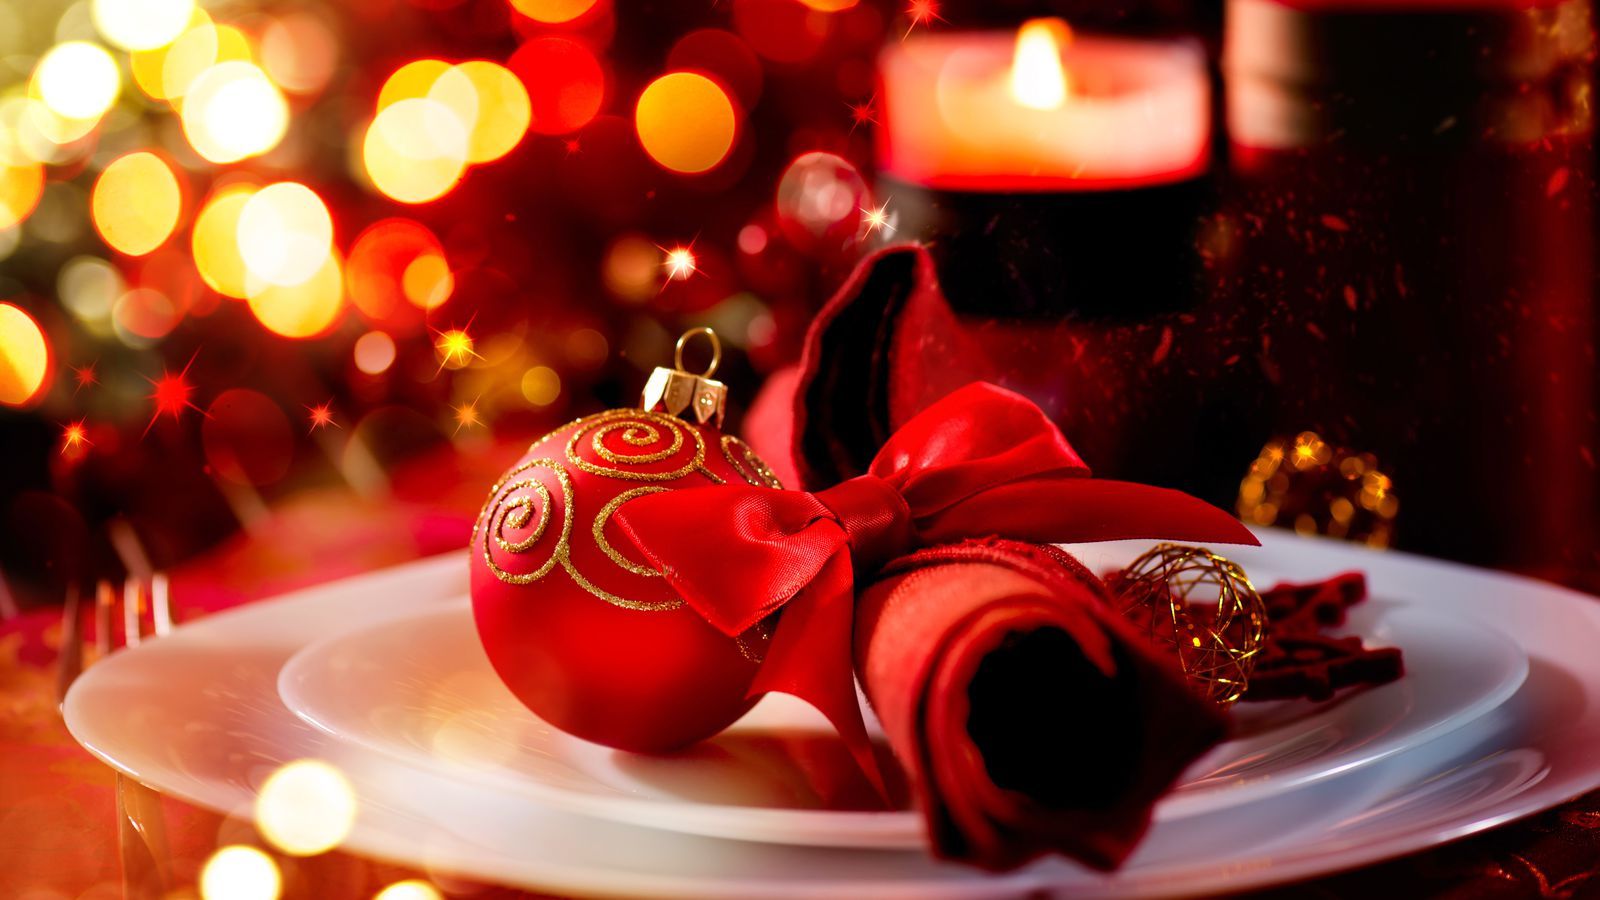 Where to eat on christmas eve in greater boston eater boston for Restaurants open on christmas eve near me